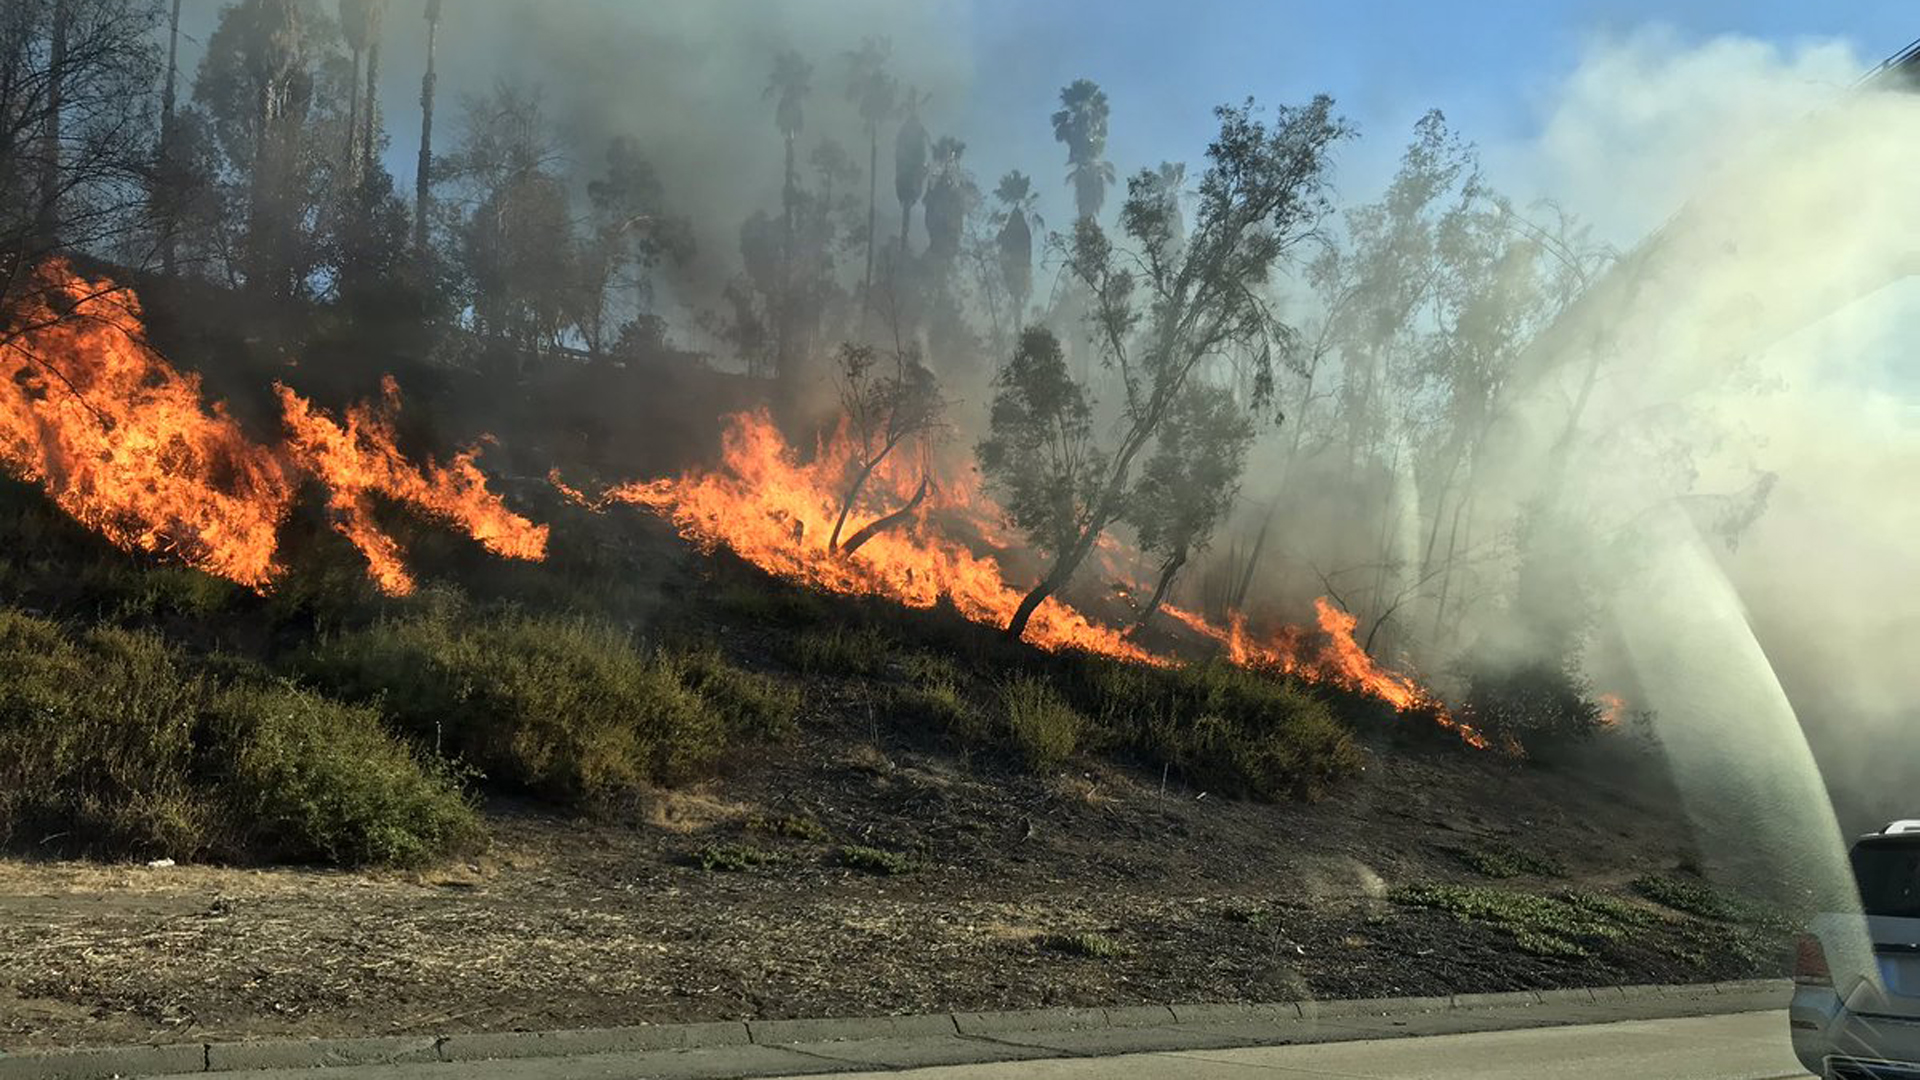 Firefighters work to extinguish a 2-acre brush fire along the 210 Freeway in Pasadena on Oct. 20, 2018. (Credit: Ricky Gordini/@TweetRickyG)